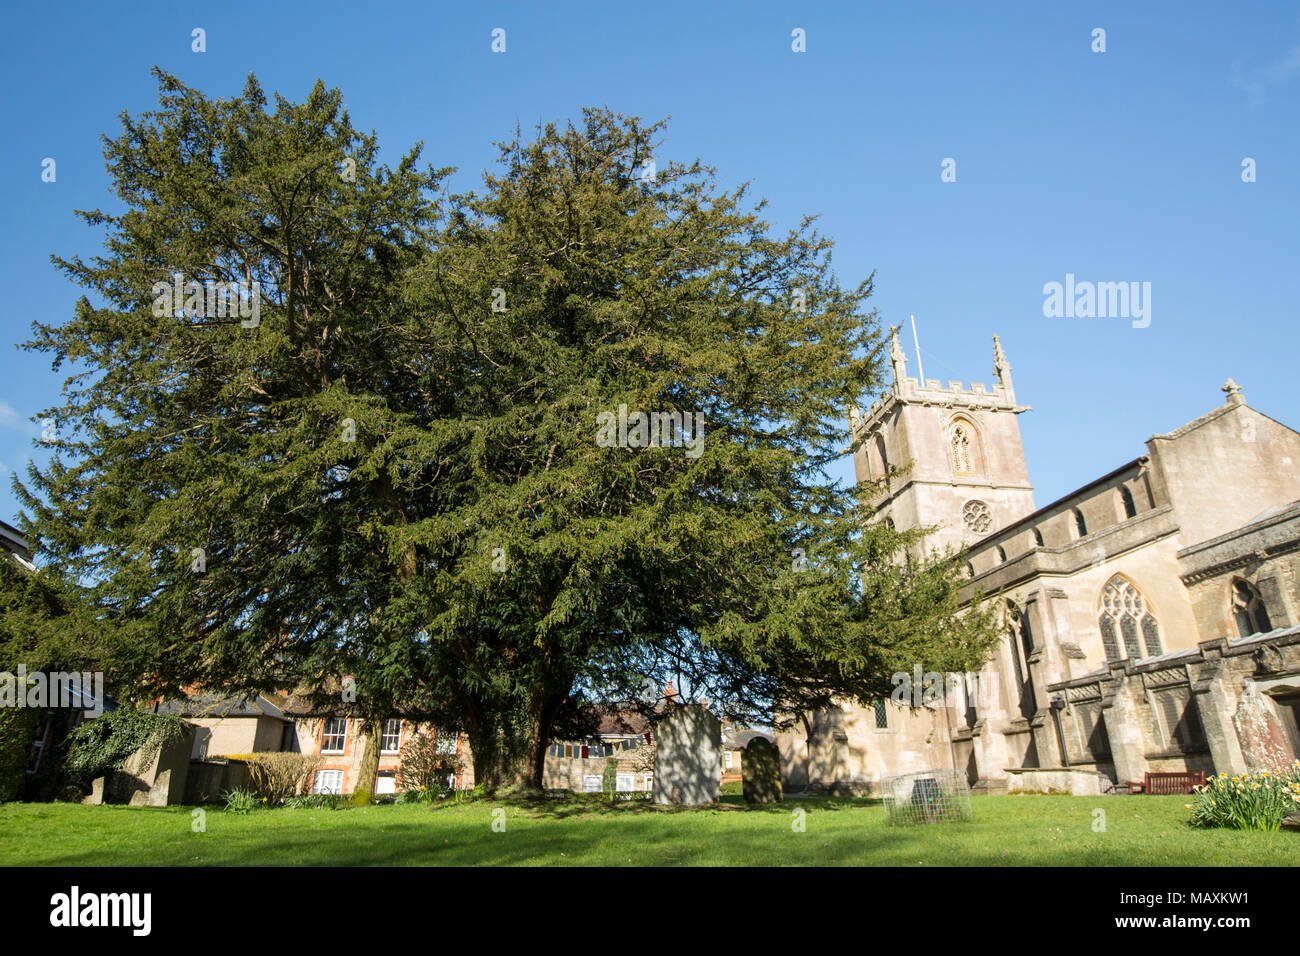 St. Mary the Virgin church, with a large yew tree in its grounds Gillingham Dorset England UK - Stock Image